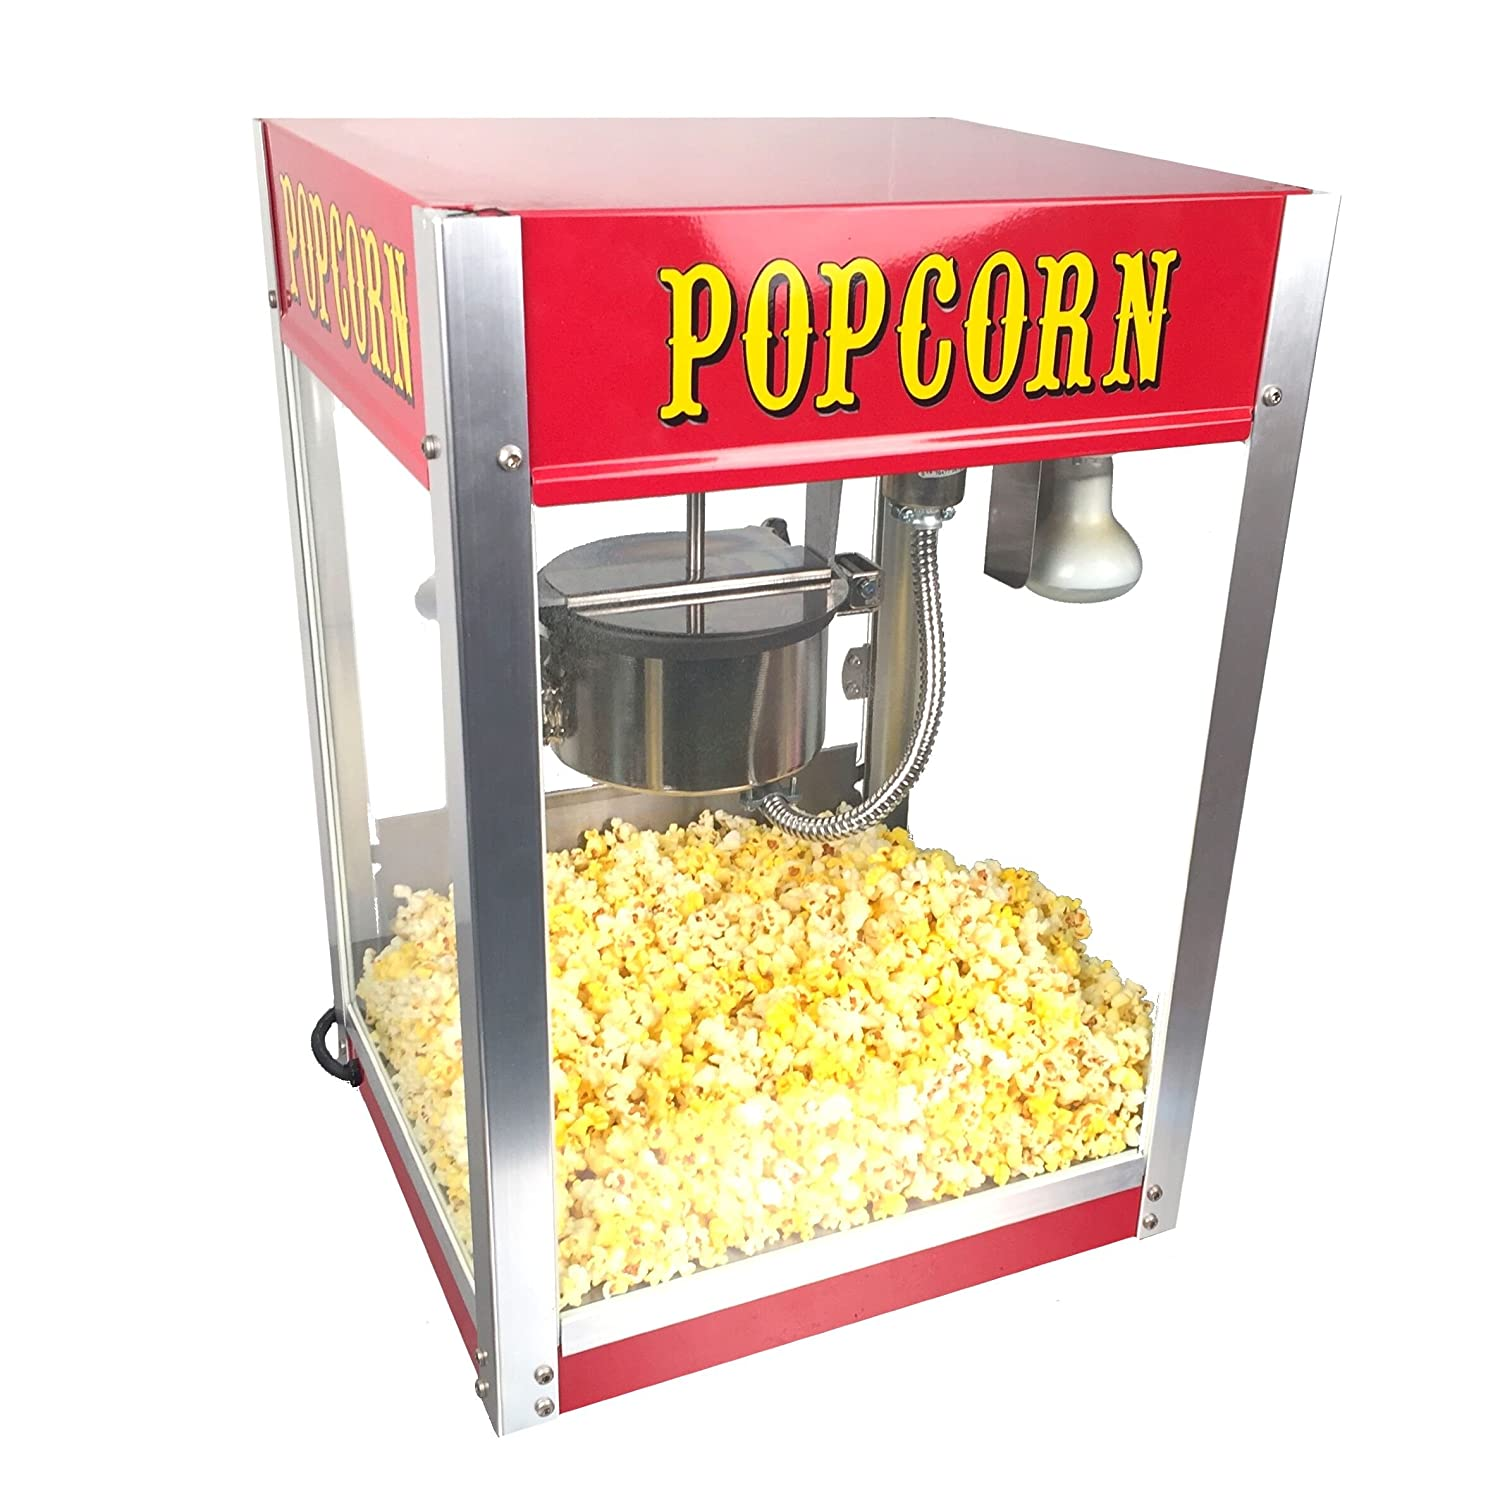 Paragon Theater Pop 4 Ounce Popcorn Machine For Roosevelt Popper Wiring Diagram Professional Concessionaires Requiring Commercial Quality High Output Equipment Sports